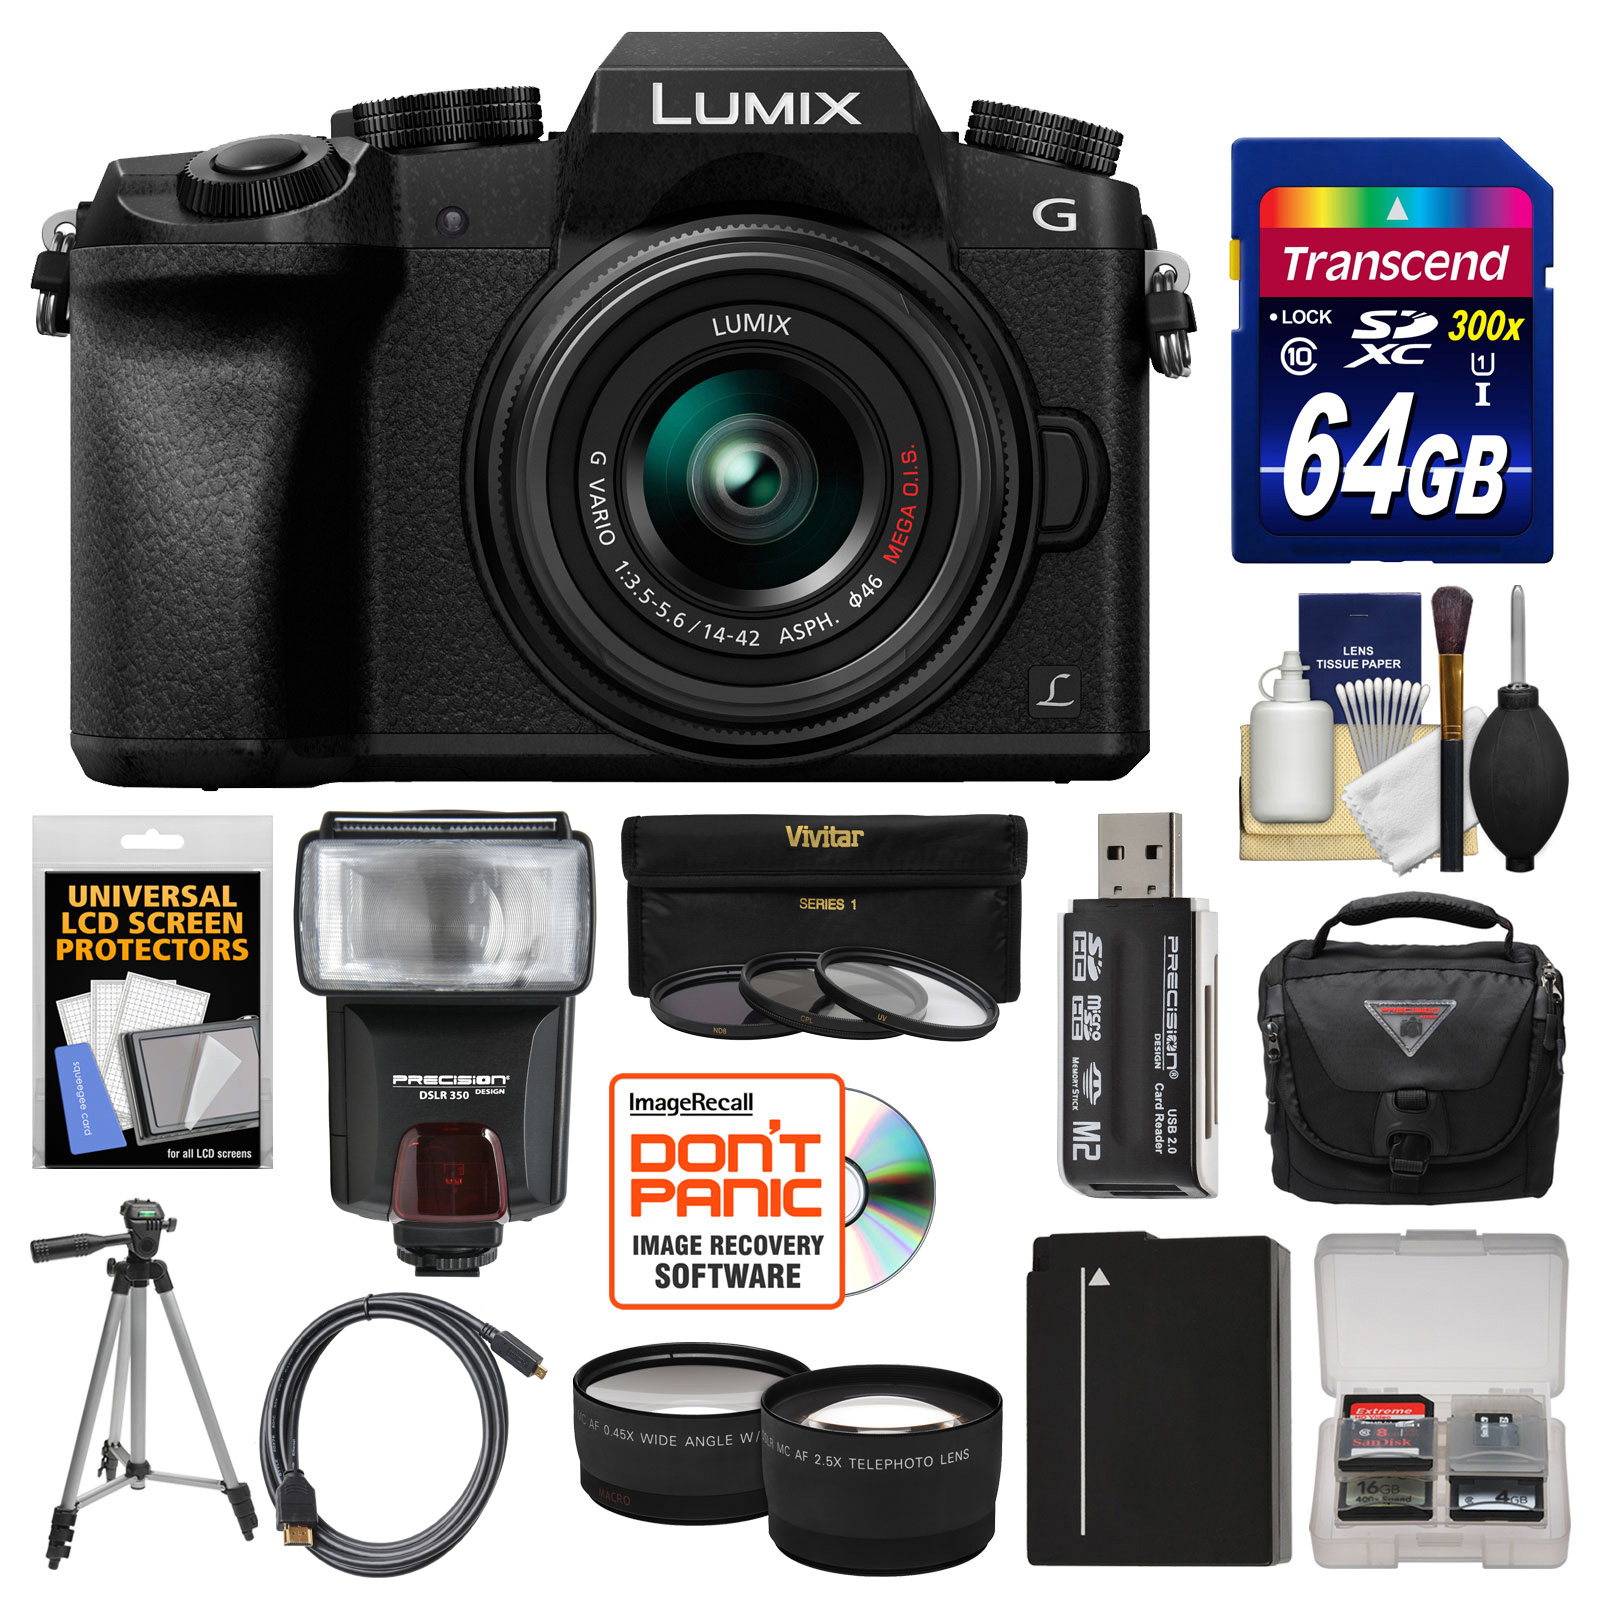 Panasonic Lumix DMC-G7 4K Wi-Fi Digital Camera & 14-42mm Lens (Silver) with 64GB Card + Case + Flash + Battery... by Panasonic